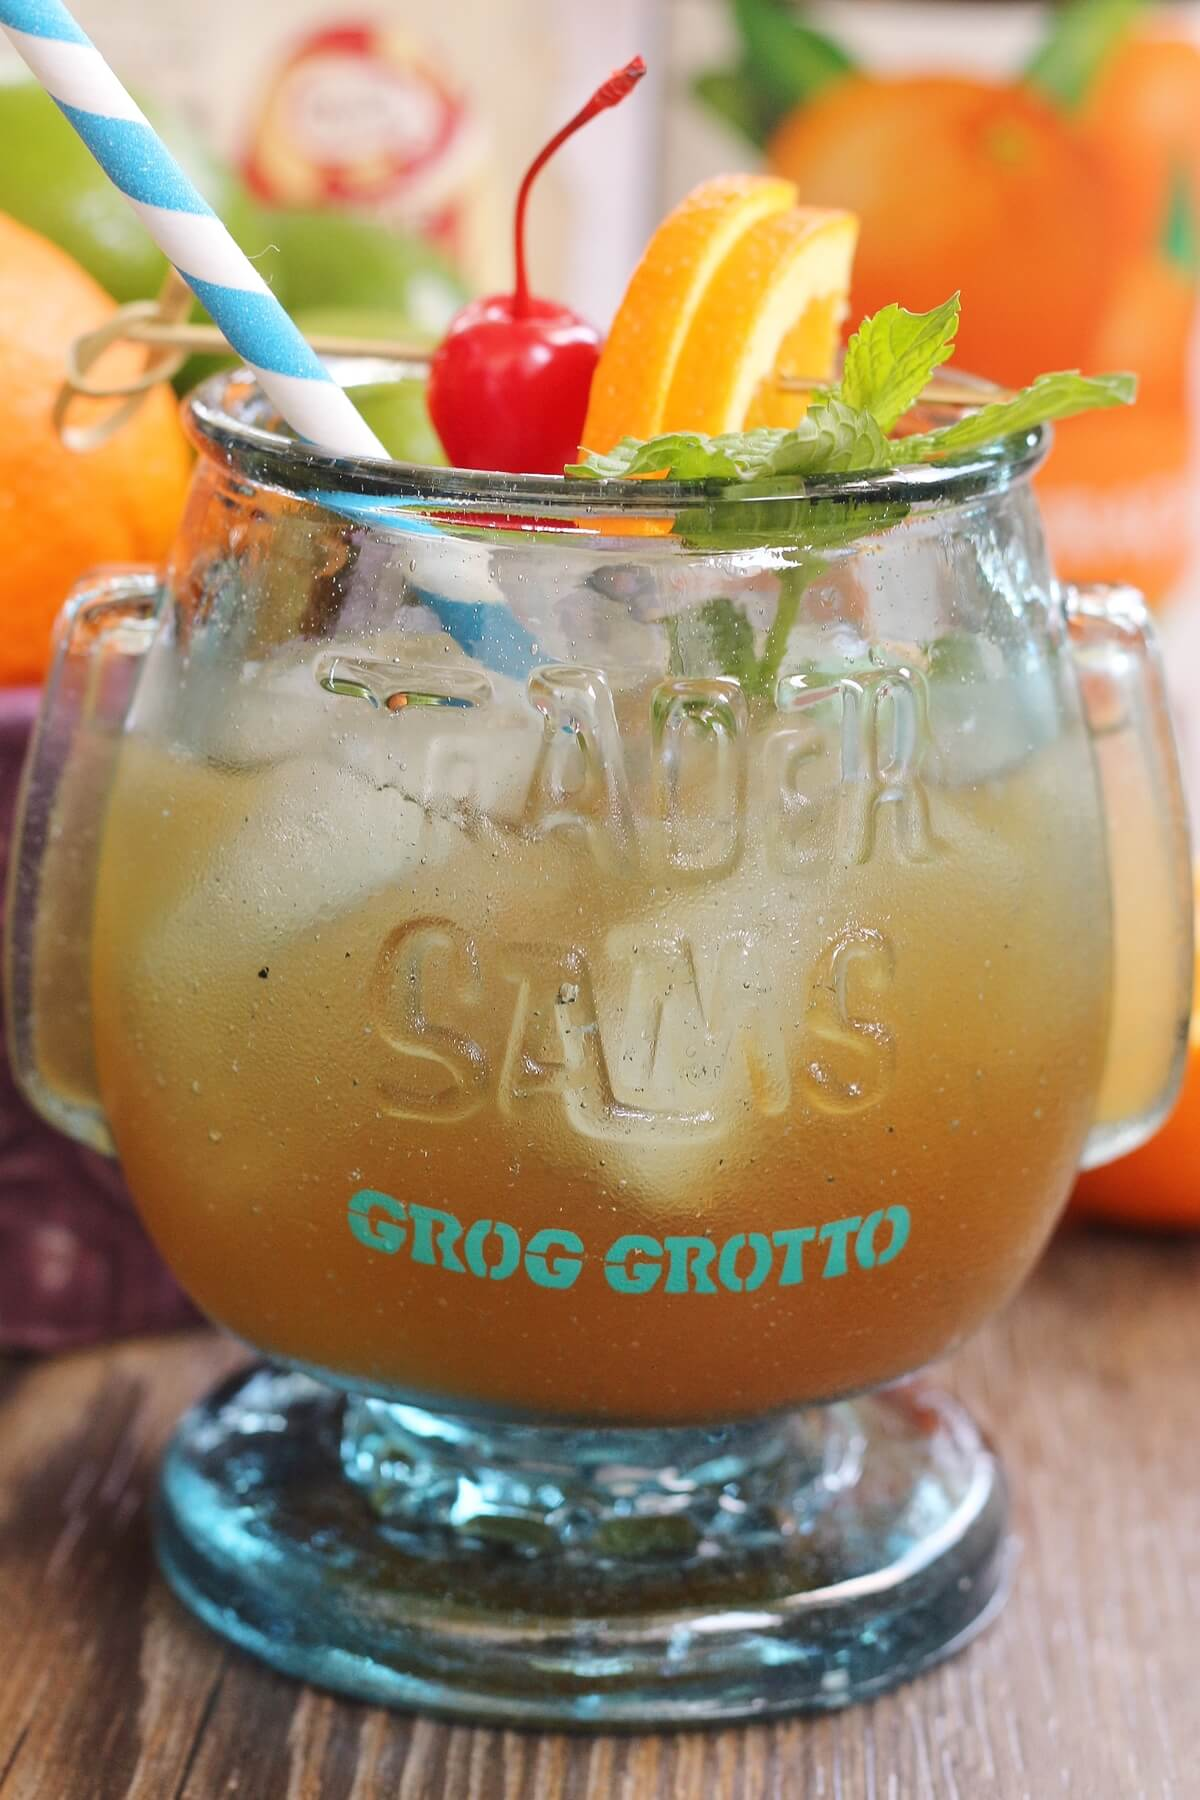 the back of a souvenir glass that says Trader Sam's Grog Grotto